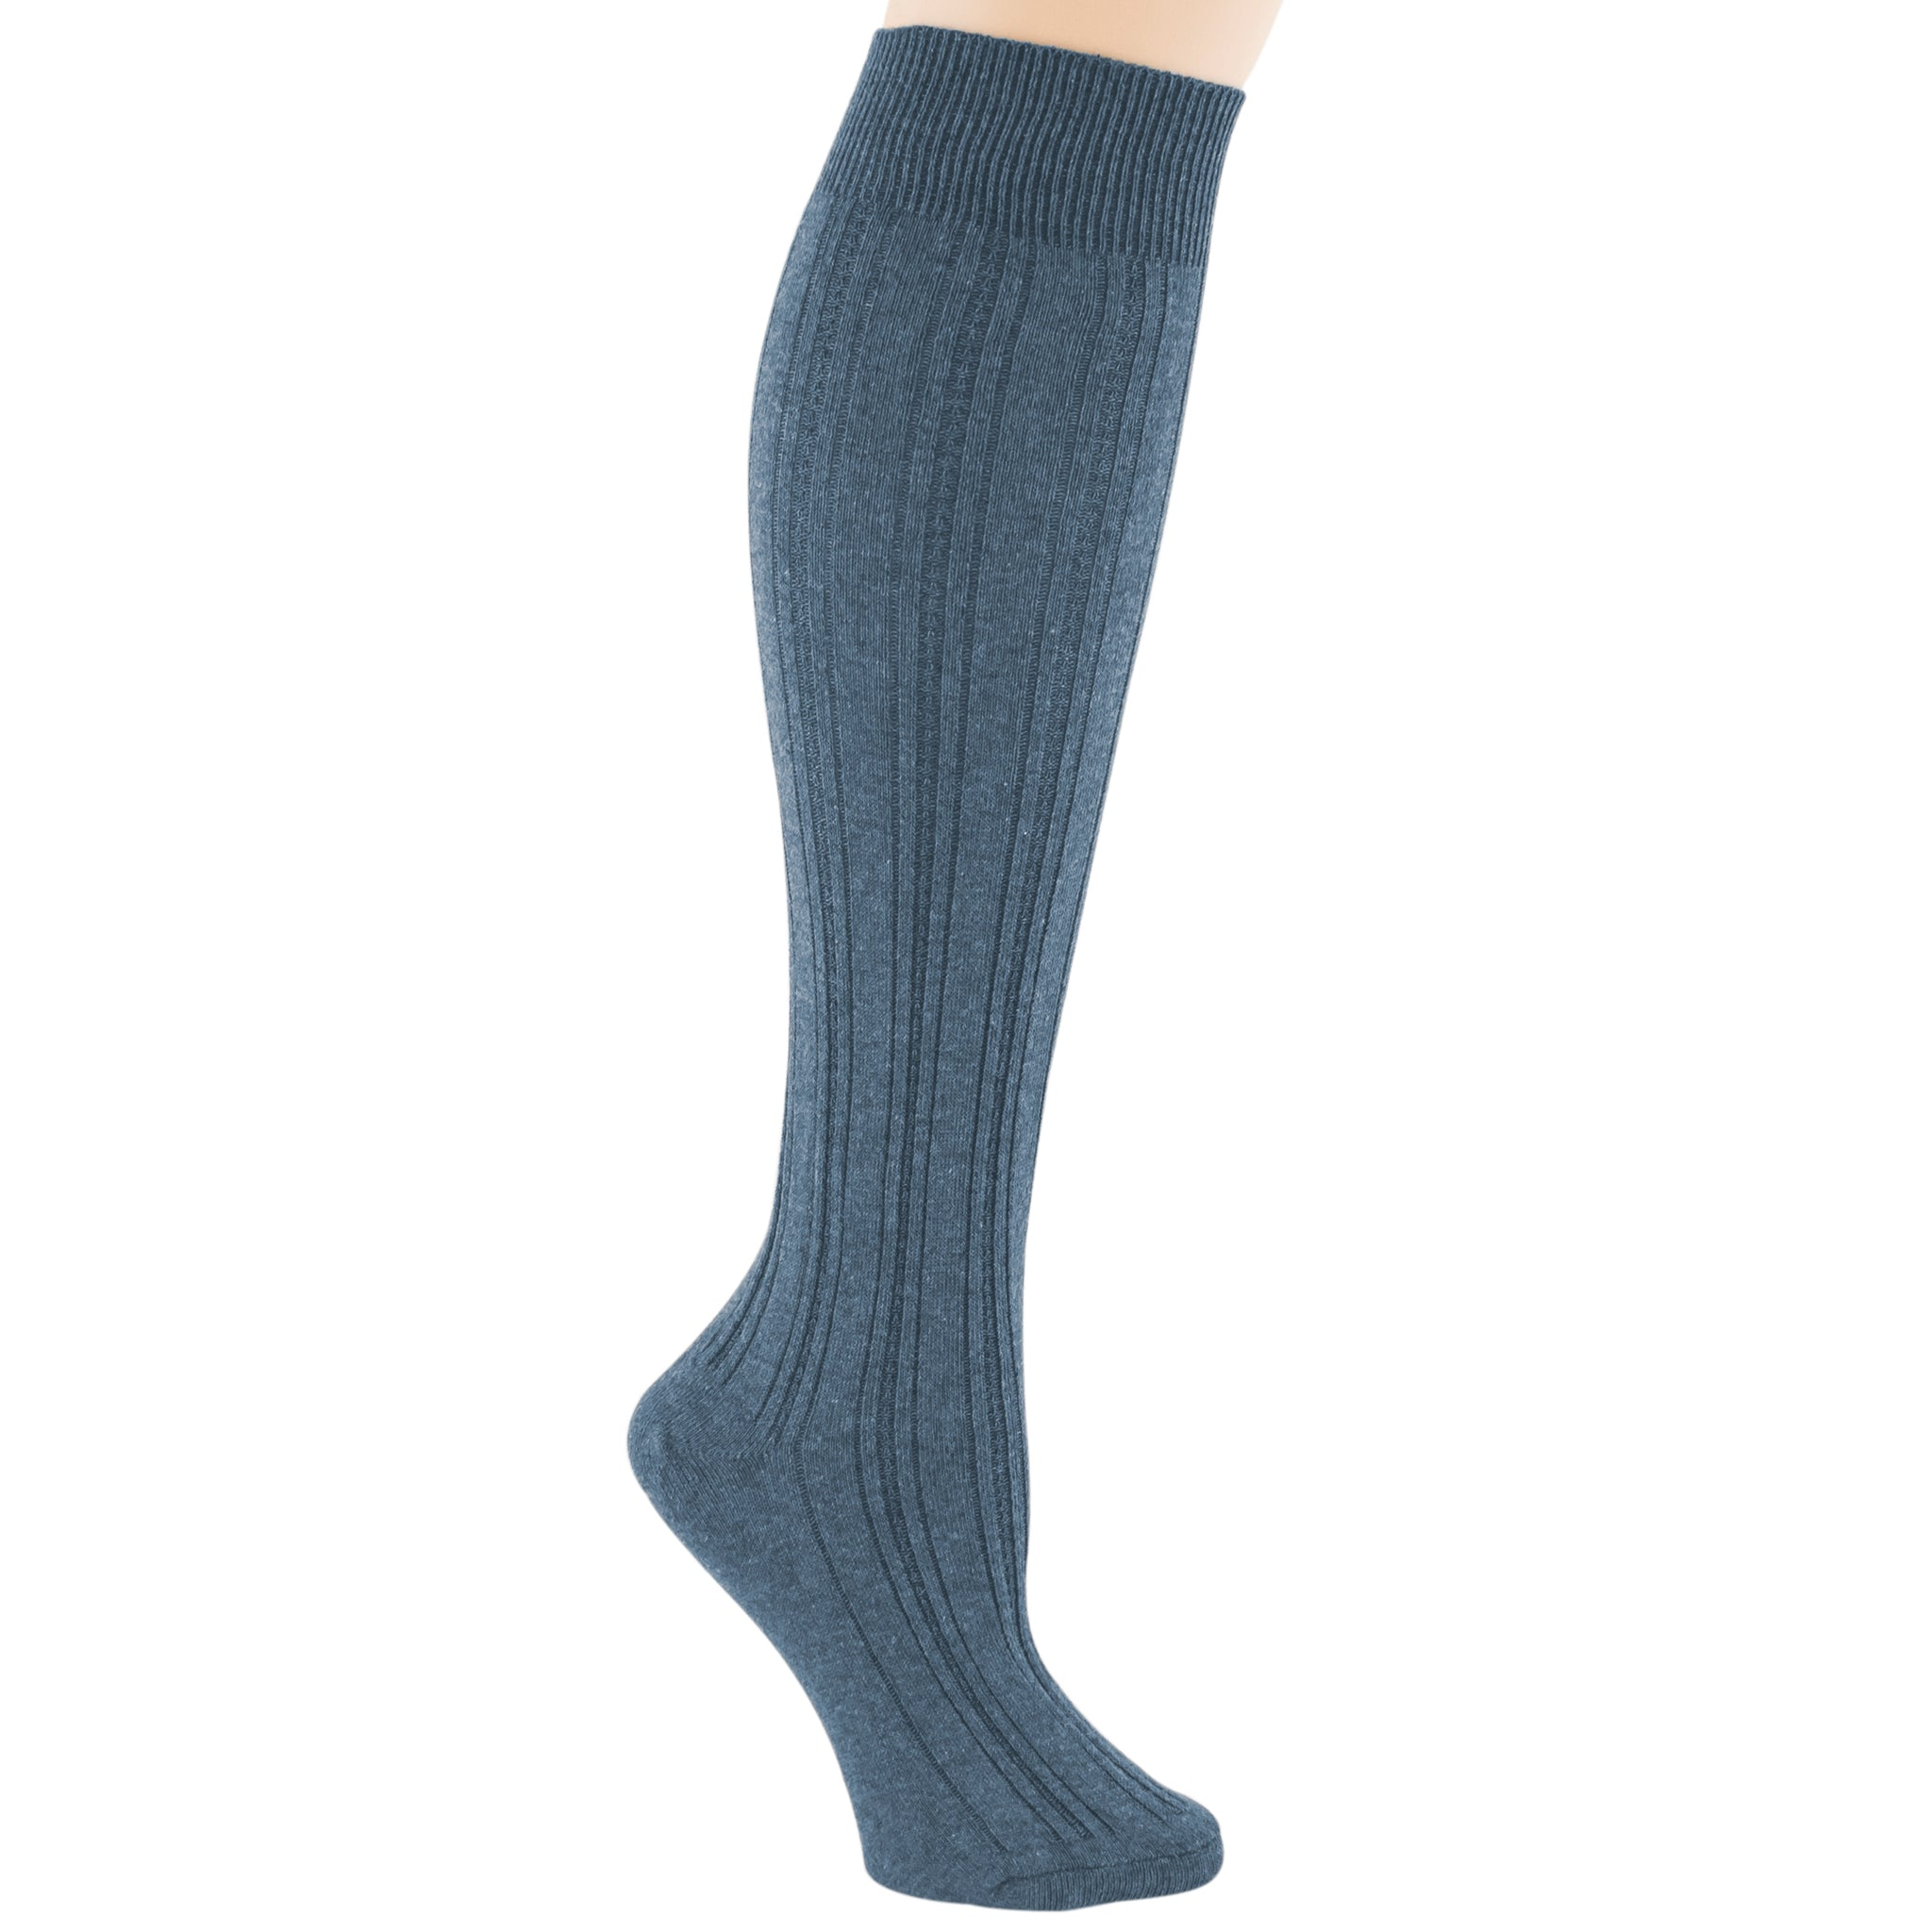 Adult Hello Big Bear Socks Skirt Crew Knee High Socks